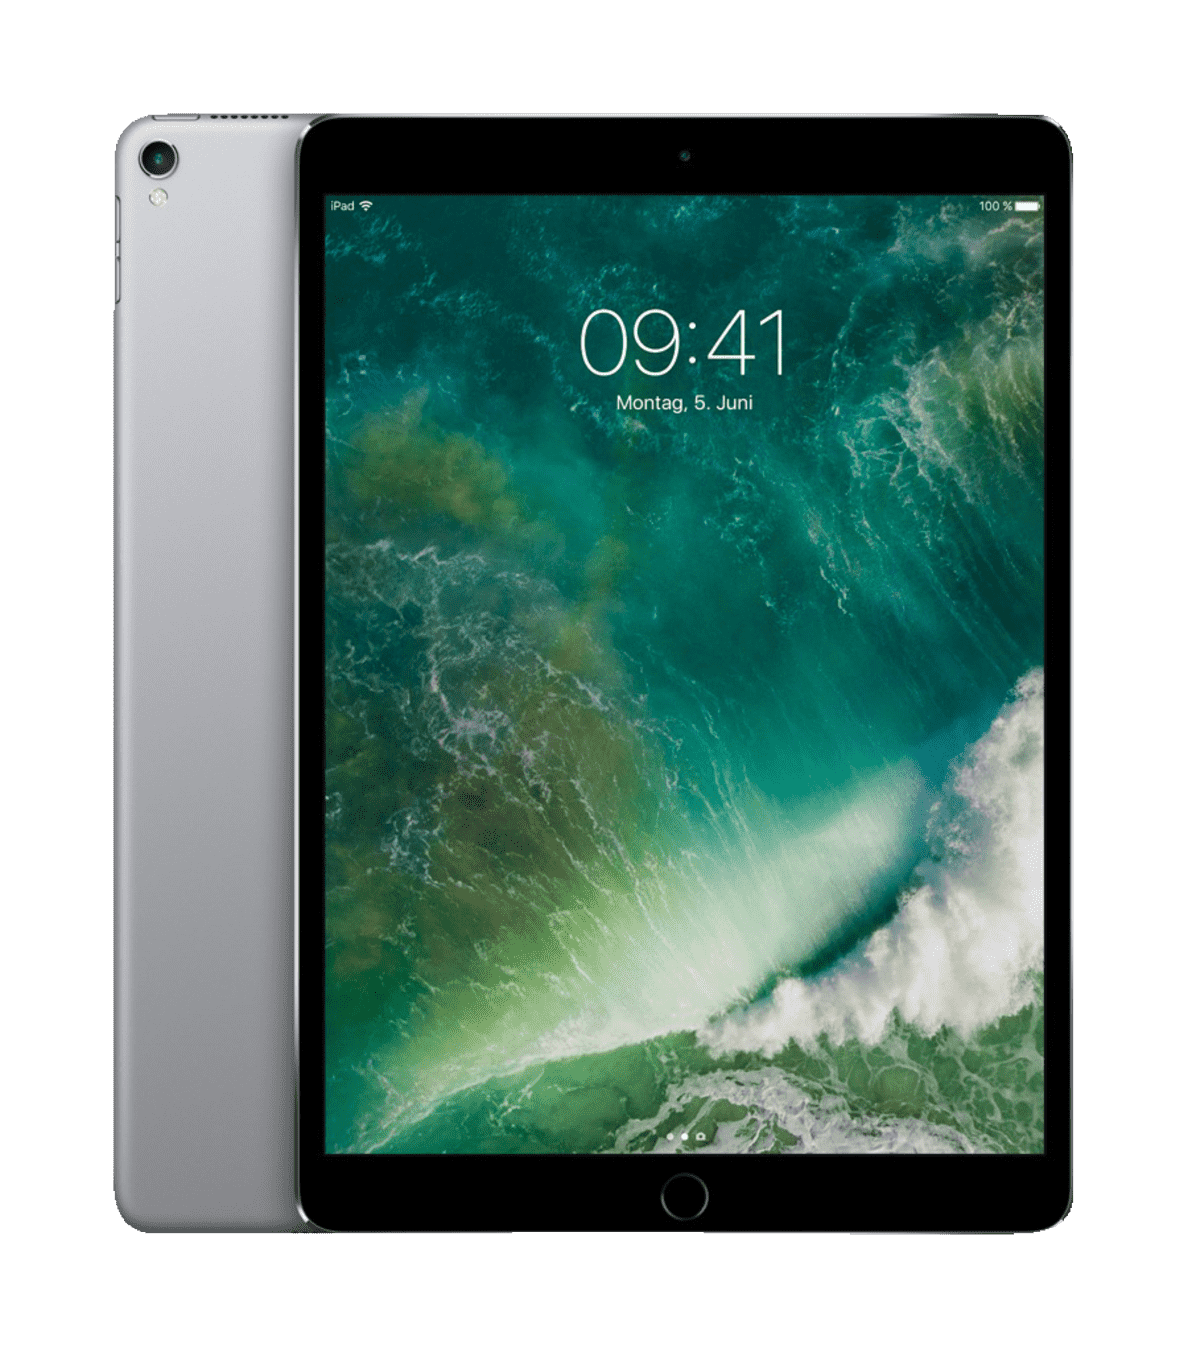 APPLE MPGH2FD/A iPad Pro Wi-Fi Tablet, 512 GB in Space Grey